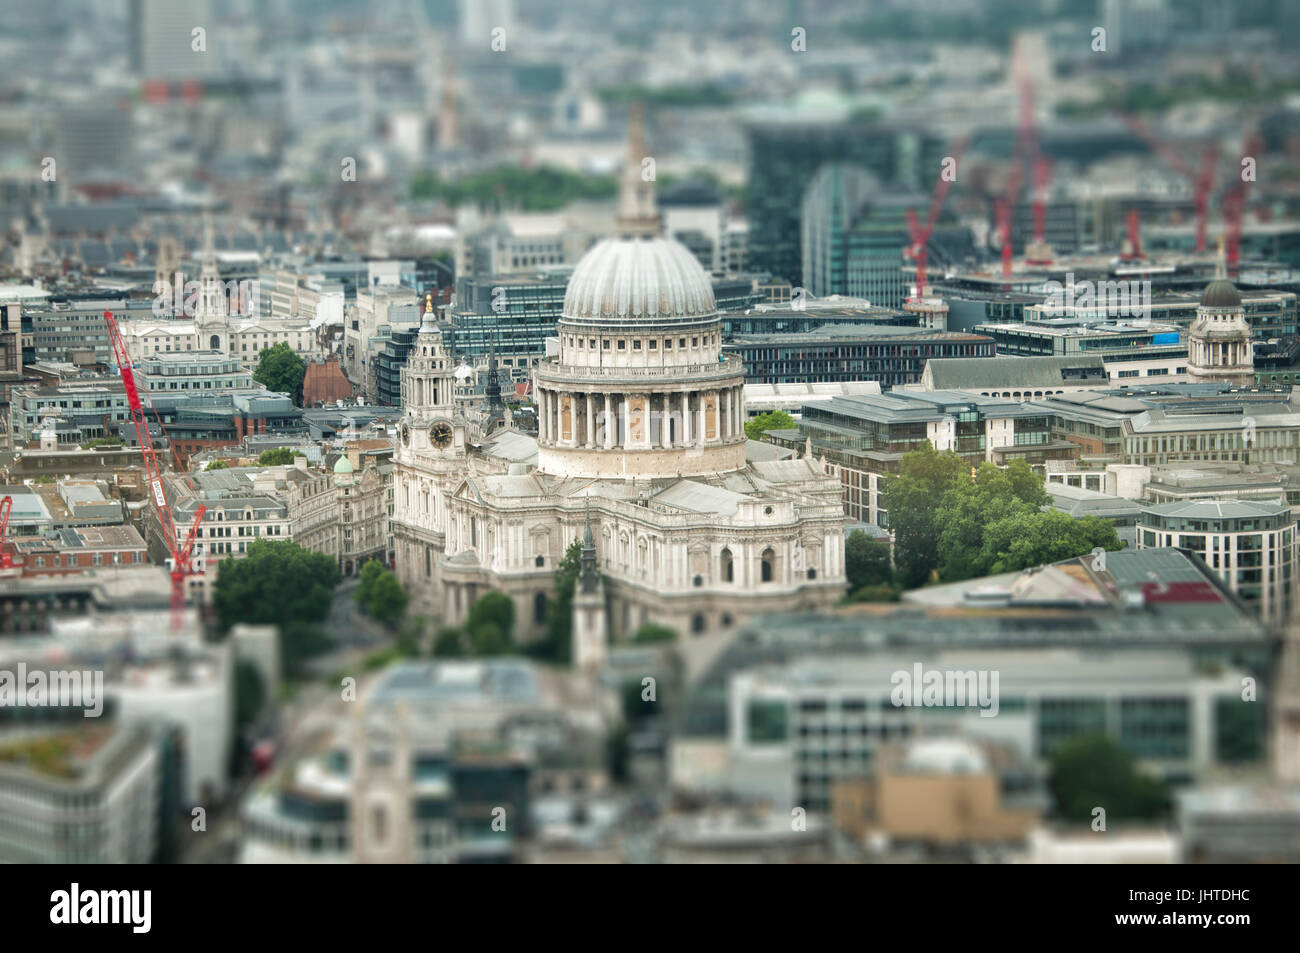 St Paul's Cathedral and West London from above Stock Photo